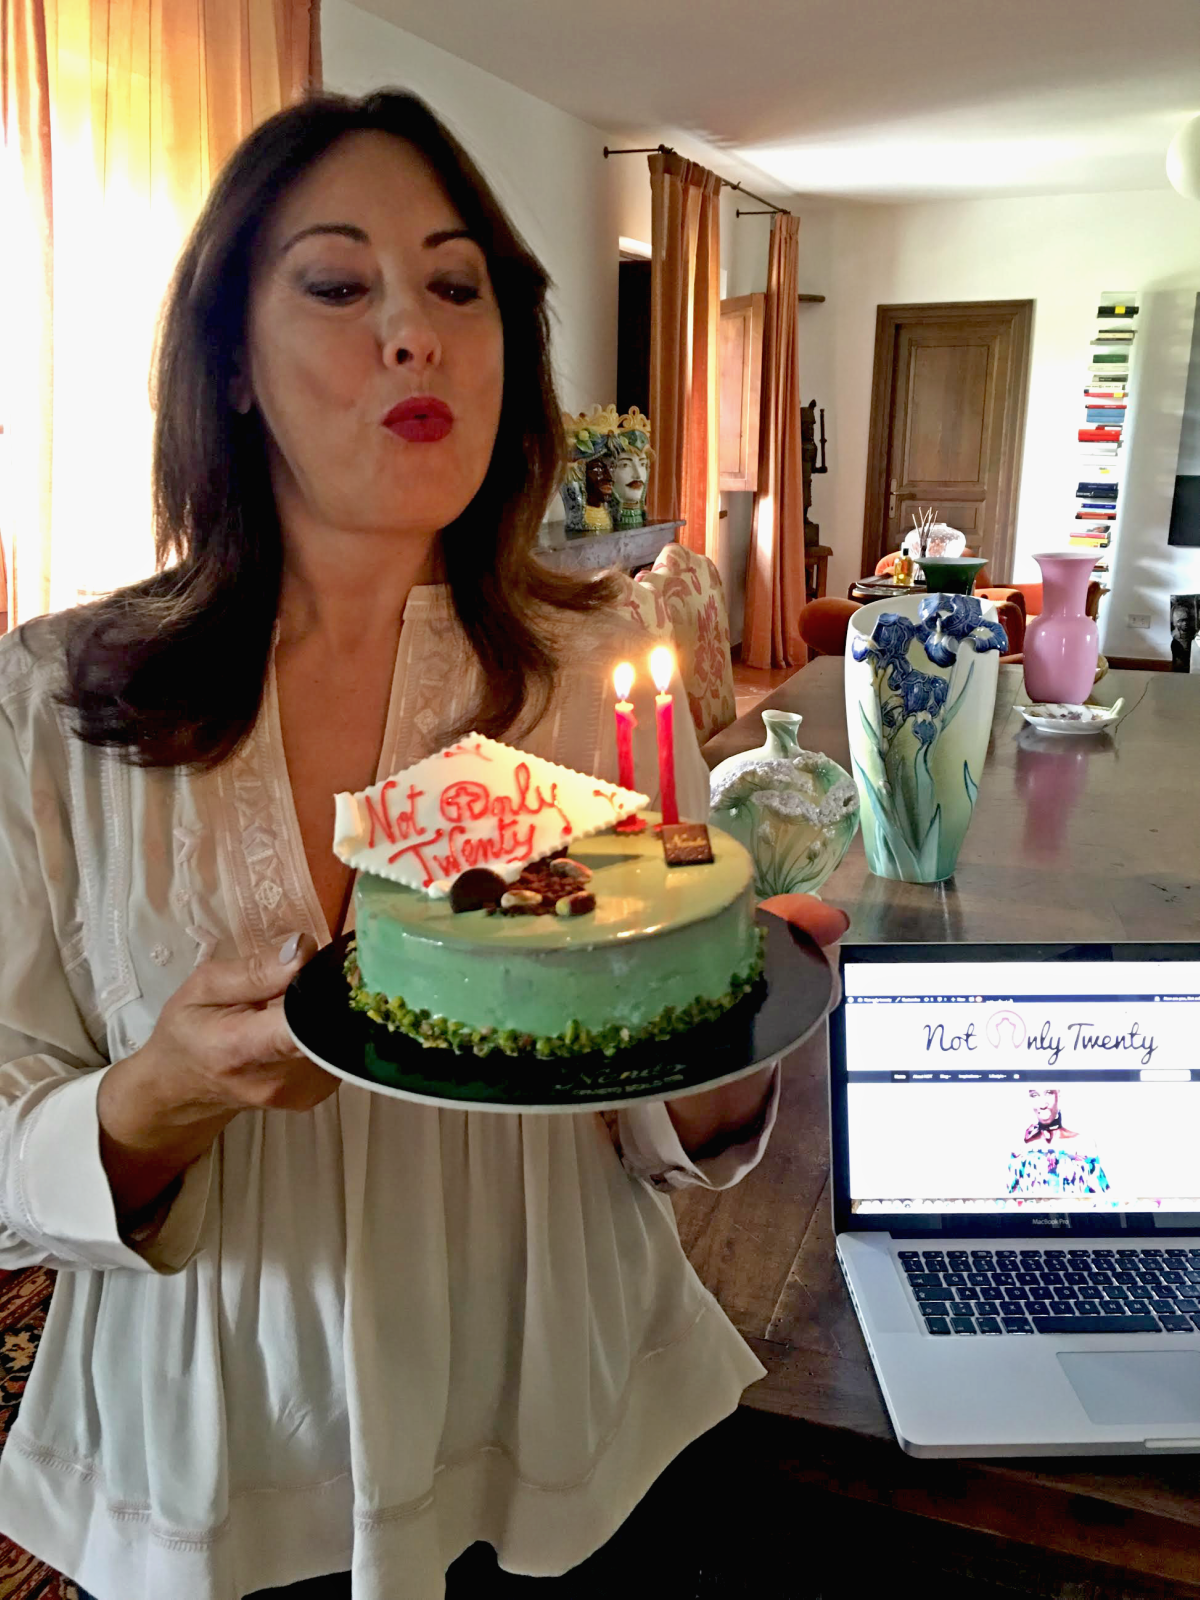 Happy birthday Not Only Twenty - fashion blog, blogging my new passion over40 over50 - have fun with fashion, dress to express yourself